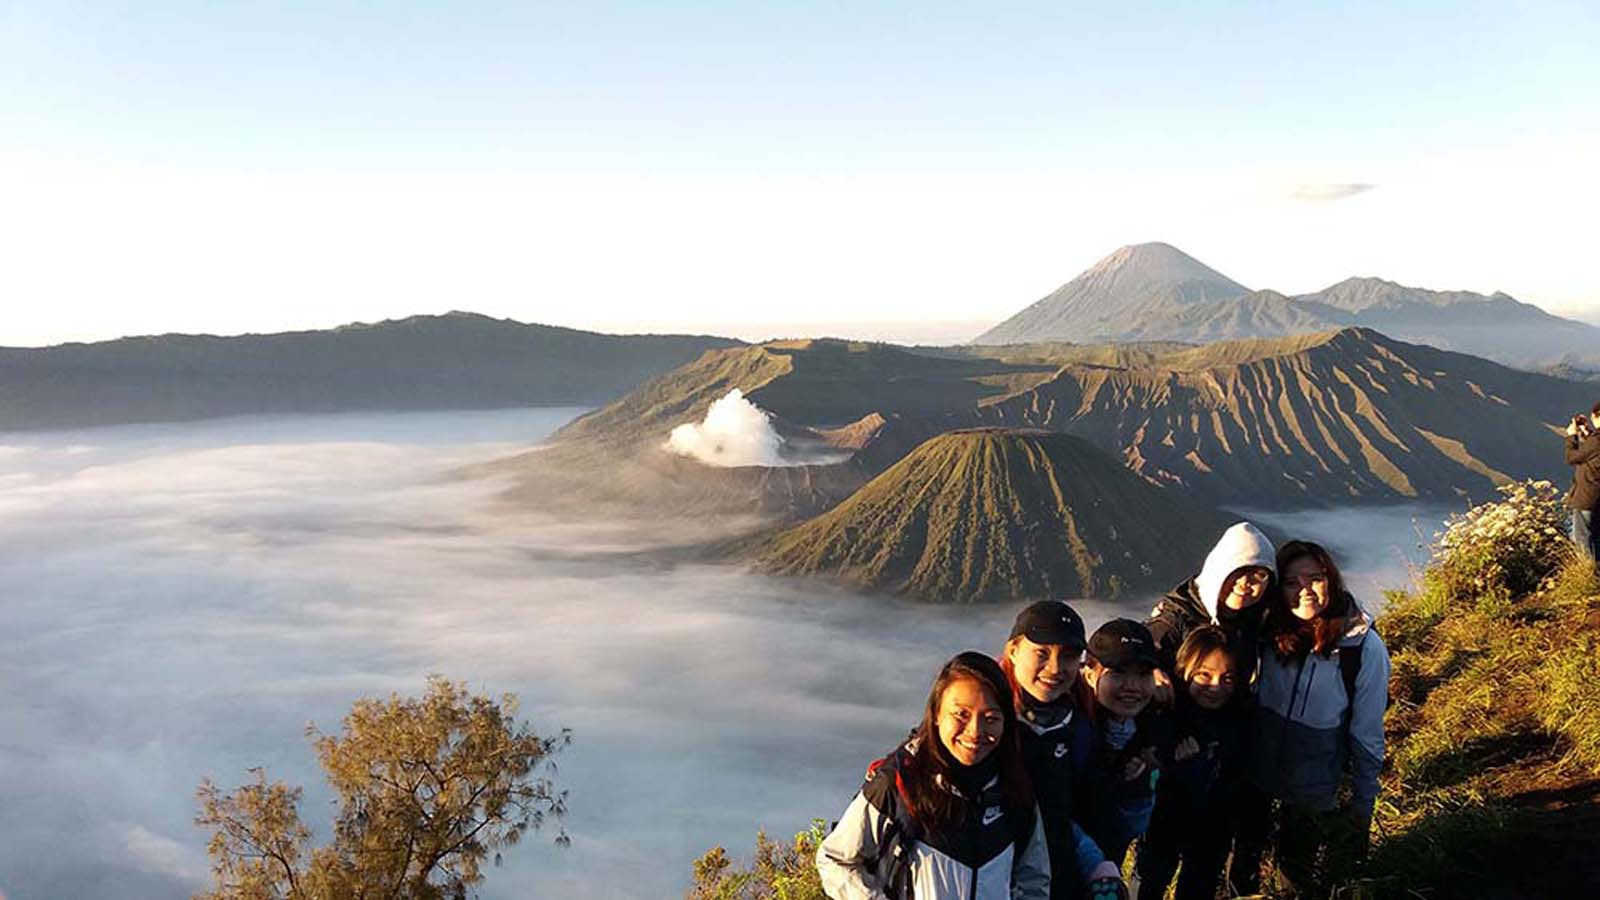 Mount Bromo Eruption History